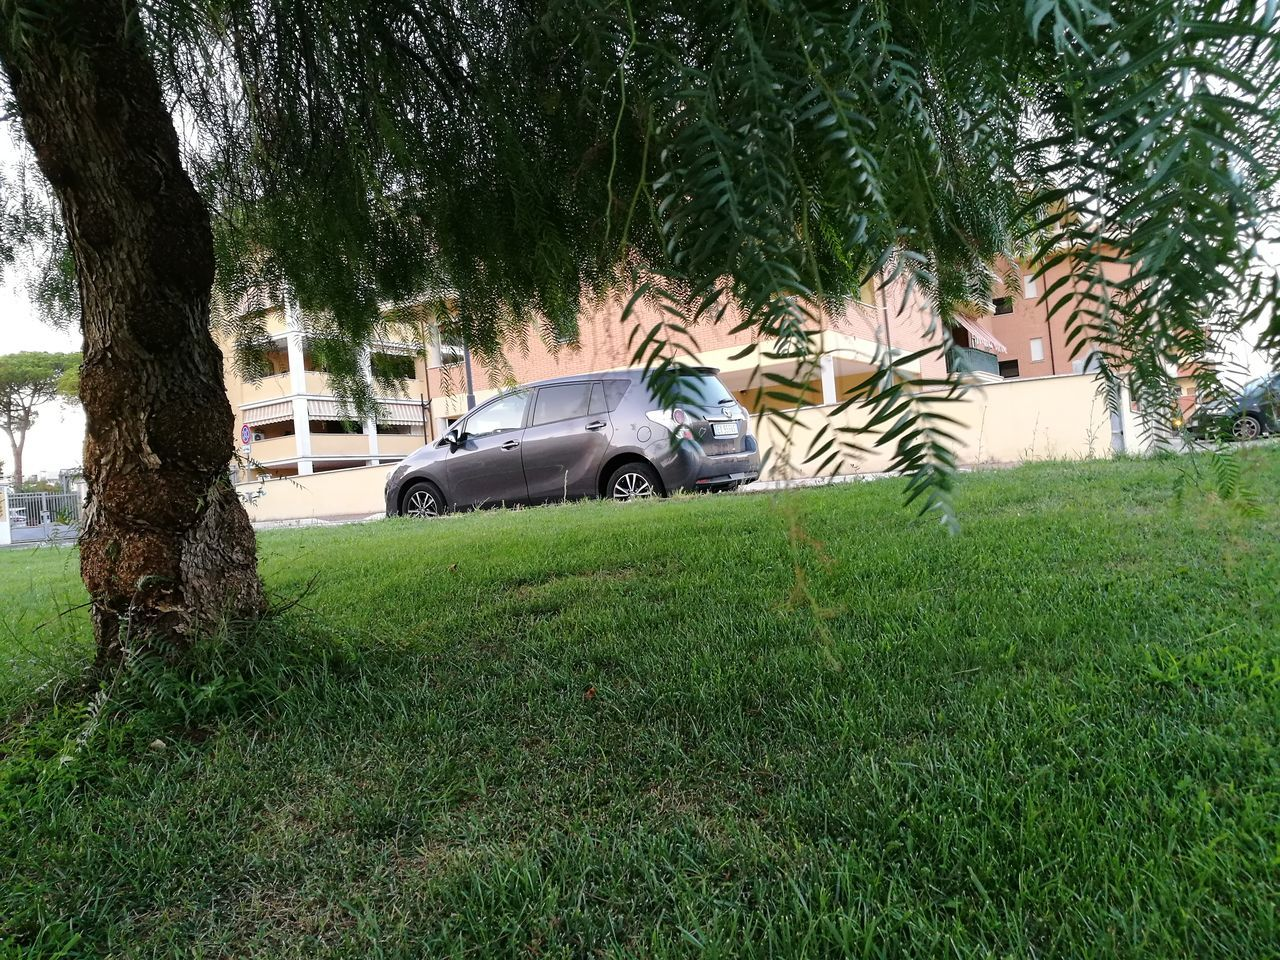 car, tree, grass, transportation, land vehicle, mode of transport, growth, day, green color, nature, no people, outdoors